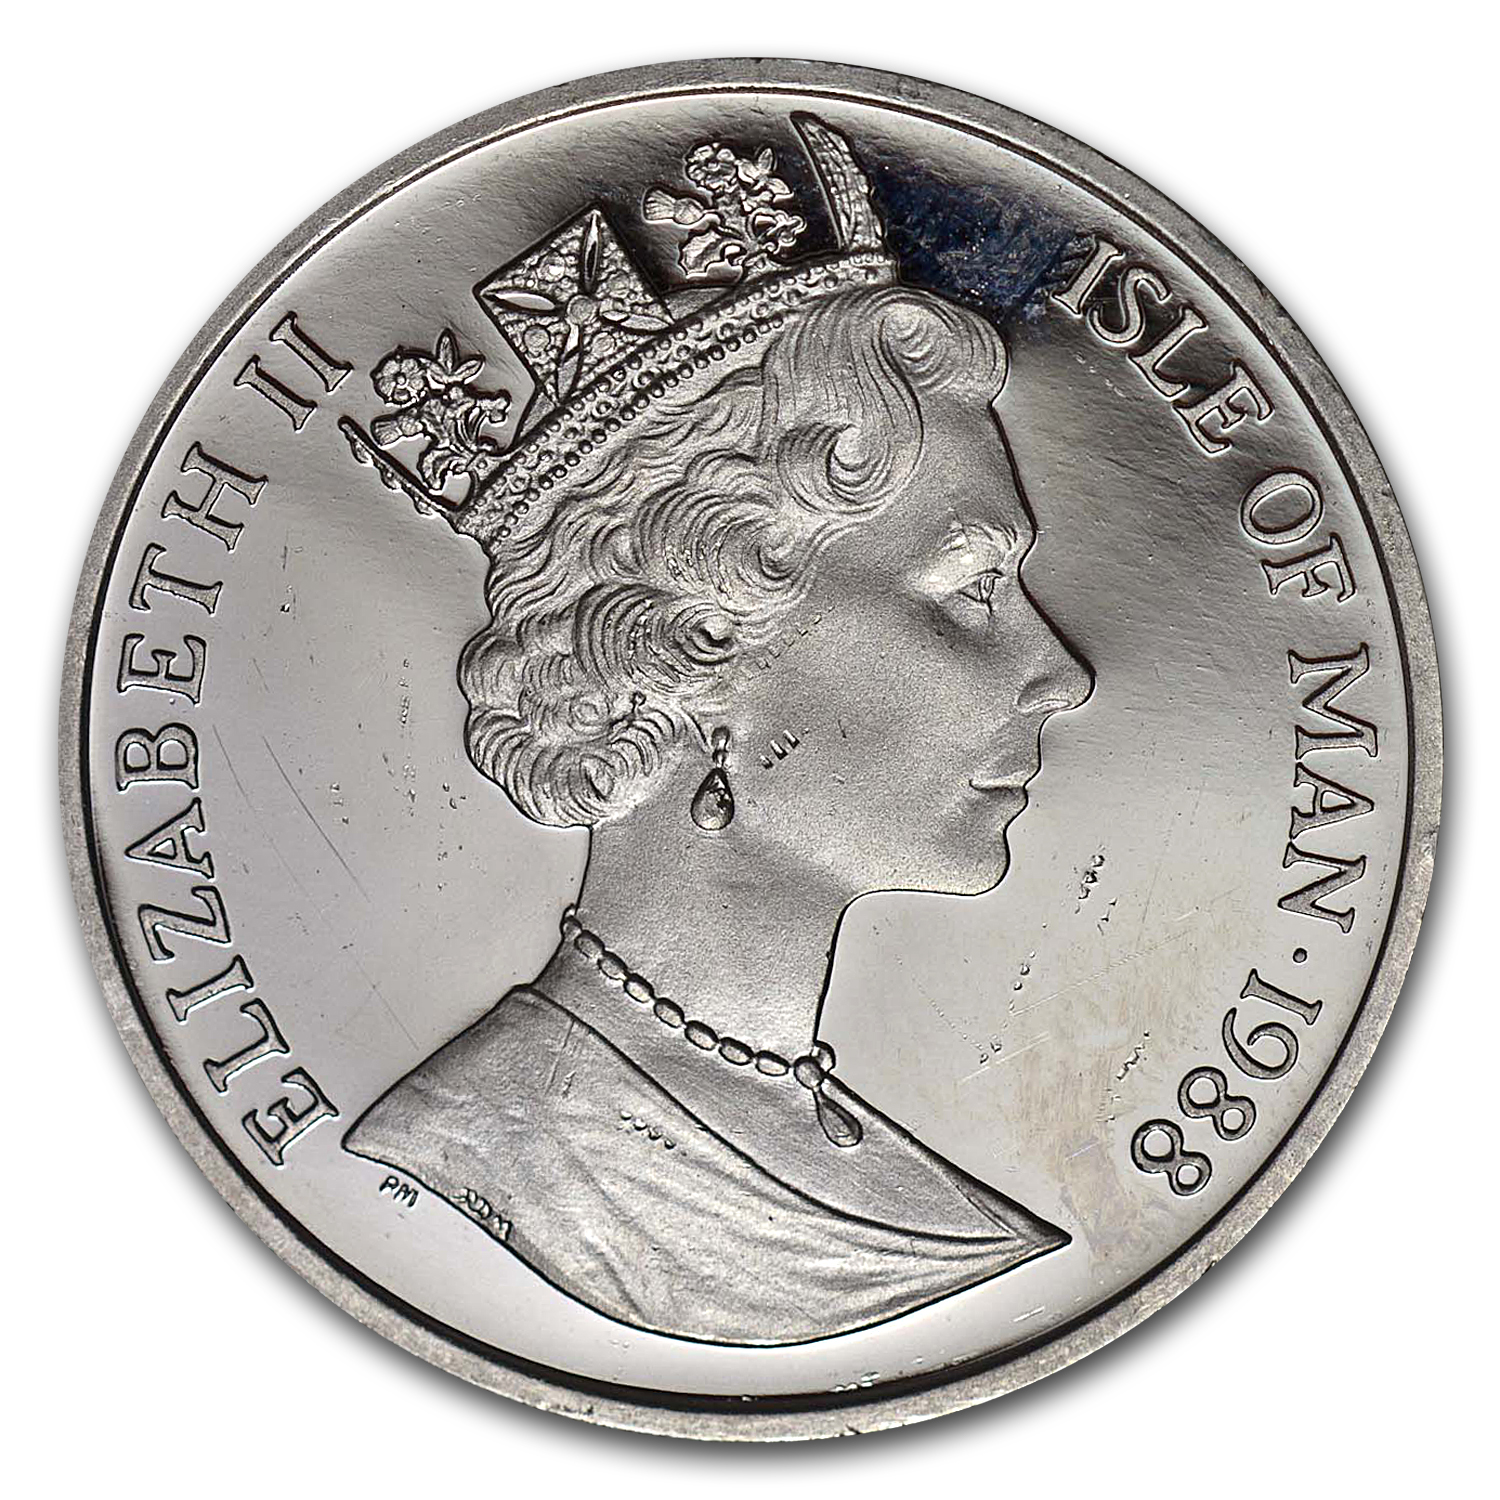 1988 1 oz Isle of Man Platinum Noble BU or Proof